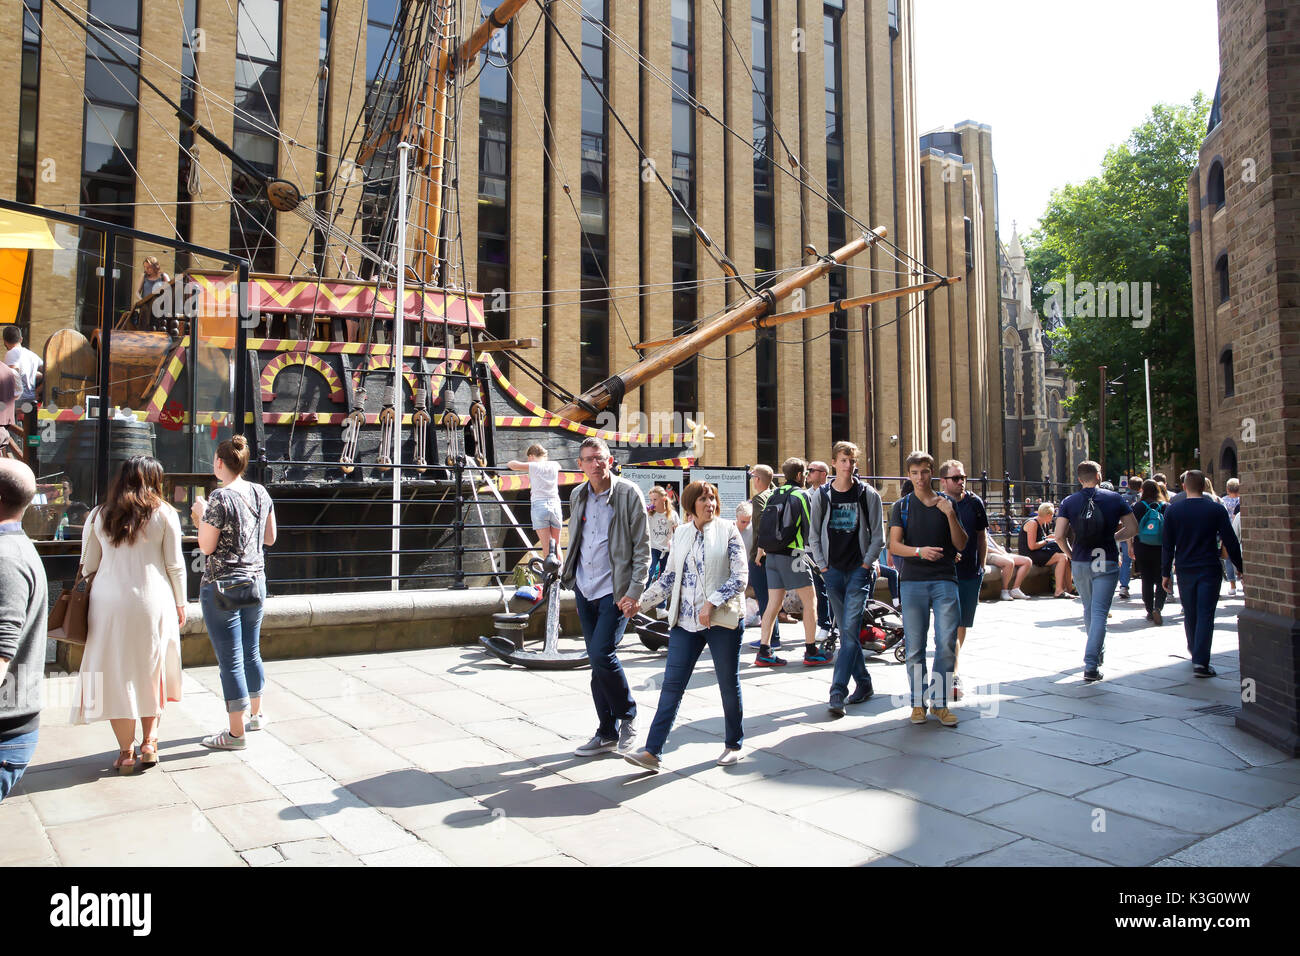 Bankside, UK. 2nd Sep, 2017. The Golden Hinde is an Elizabethan Galleon in London© Keith Larby/Aalmy Live News - Stock Image